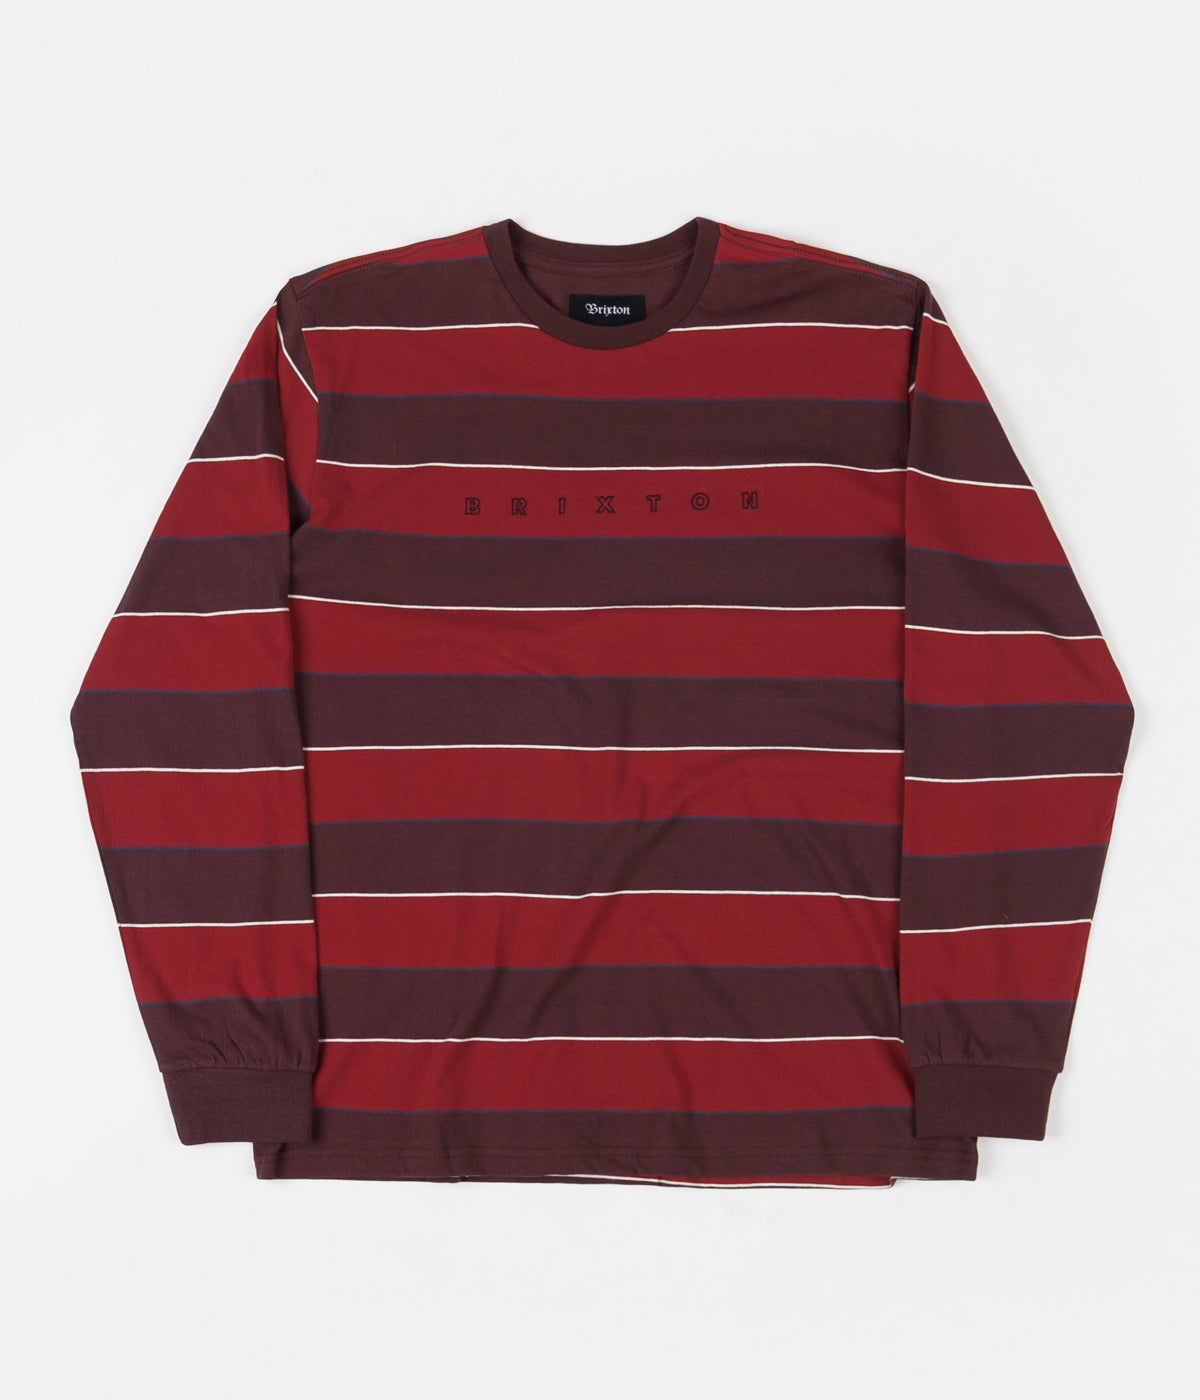 Brixton Hilt Embroidered Knit Long Sleeve T-Shirt - Plum / Cardinal